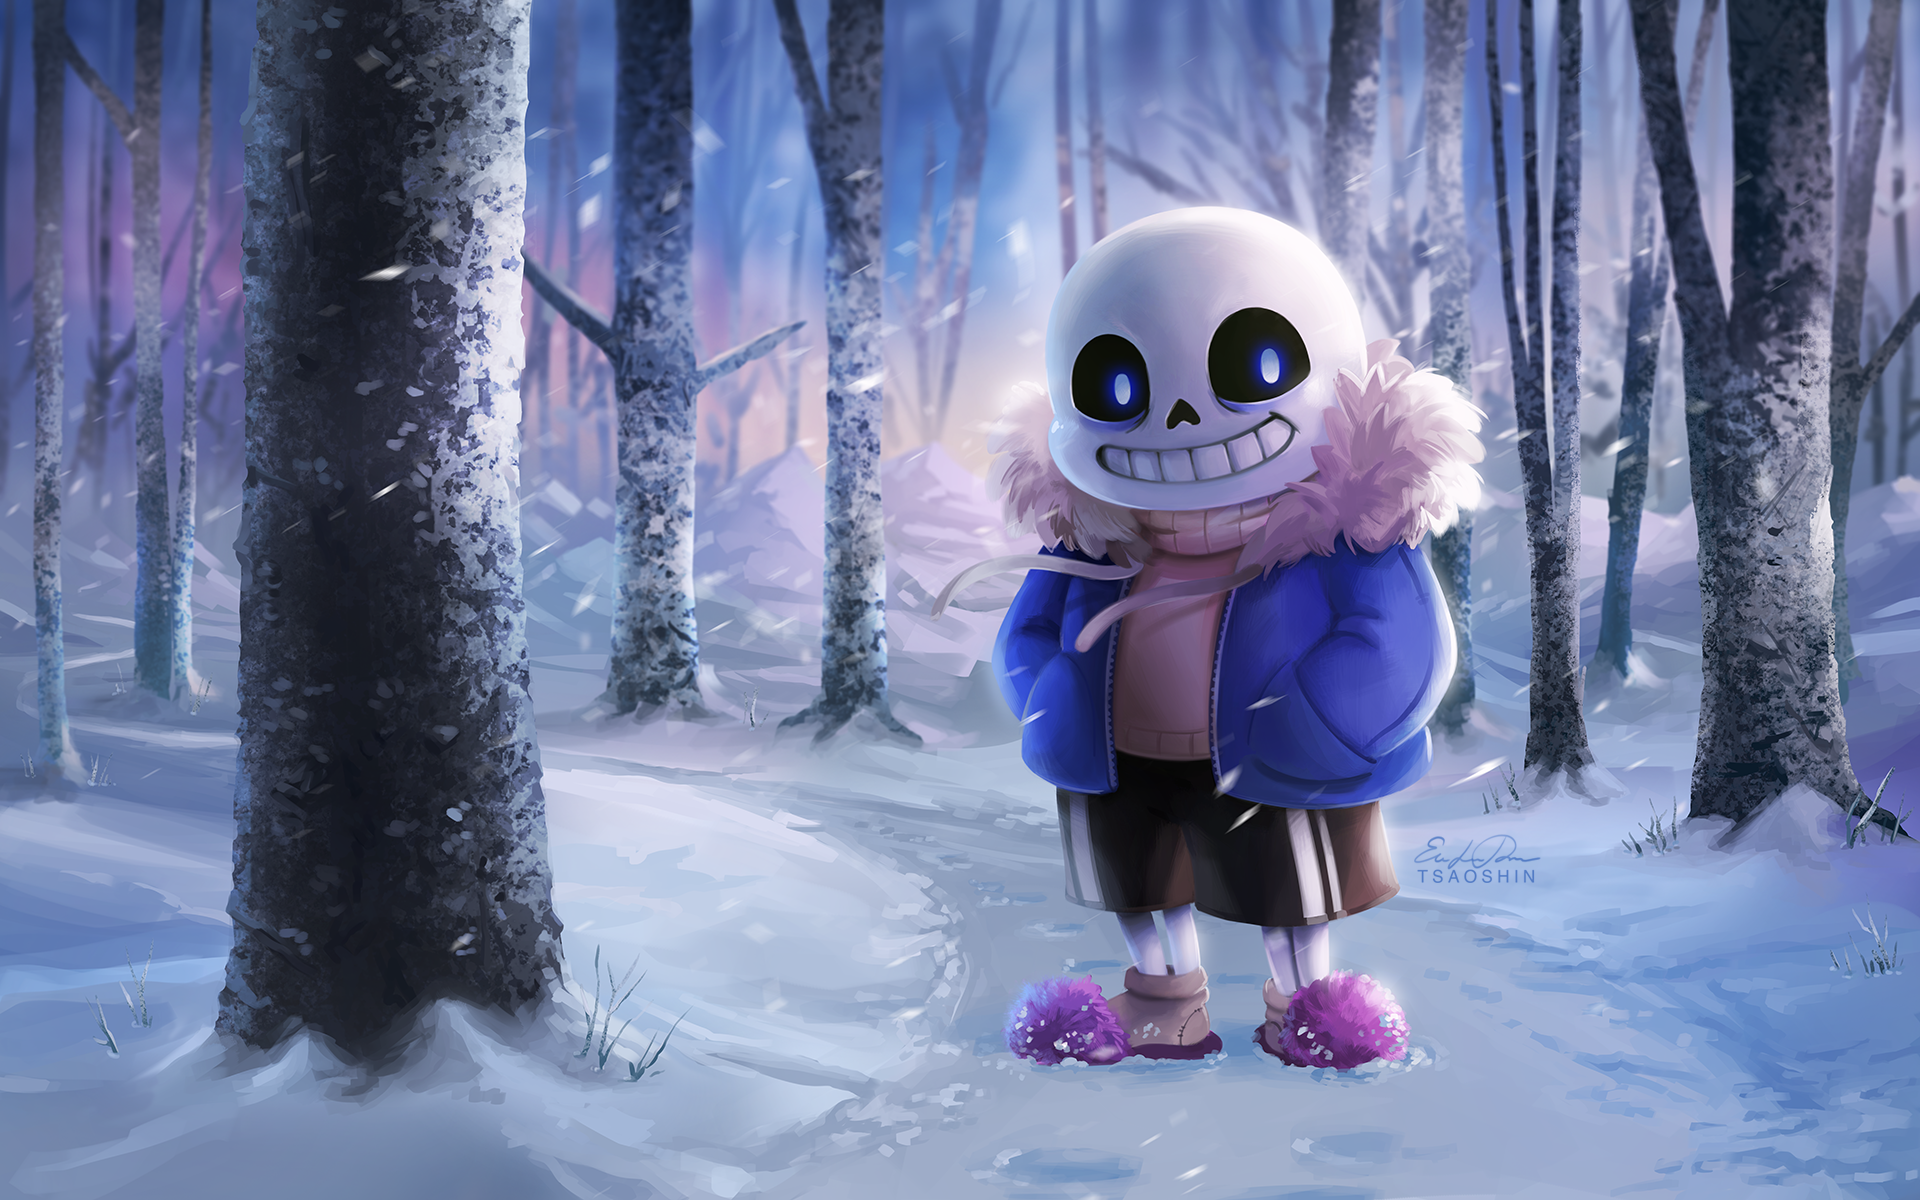 Video Game - Undertale  Creepy Snow Tree Forest Sans (Undertale) Wallpaper